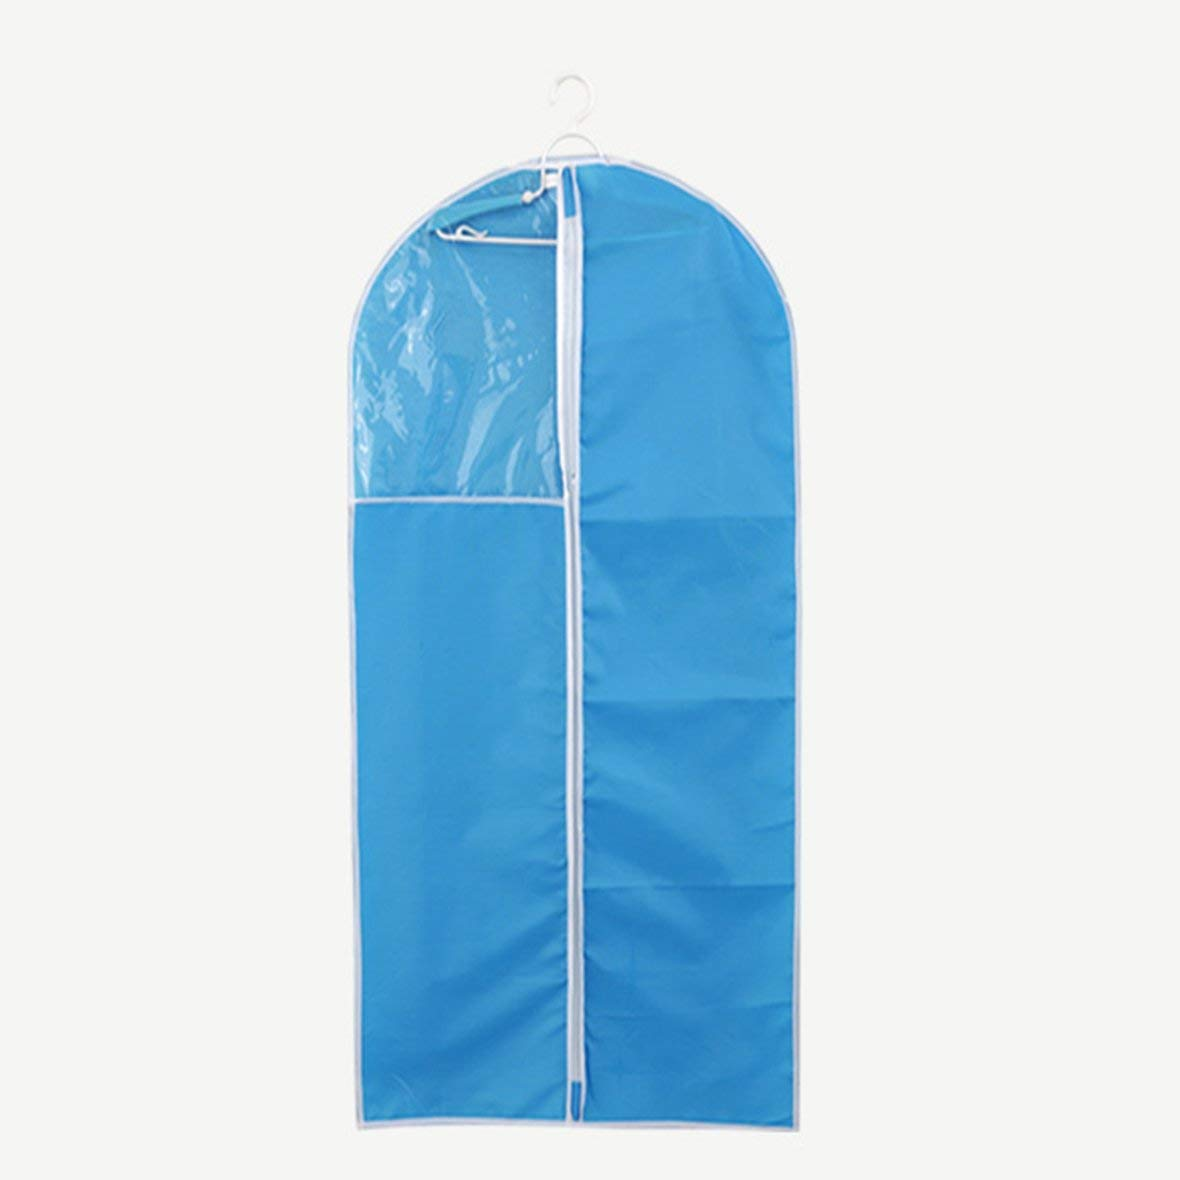 Tivolii Breathable Garment Suit Covers Dustproof Hanger Bags Eco-Friendly Clothes Dress Storage Covers Jacket Storage Pouch